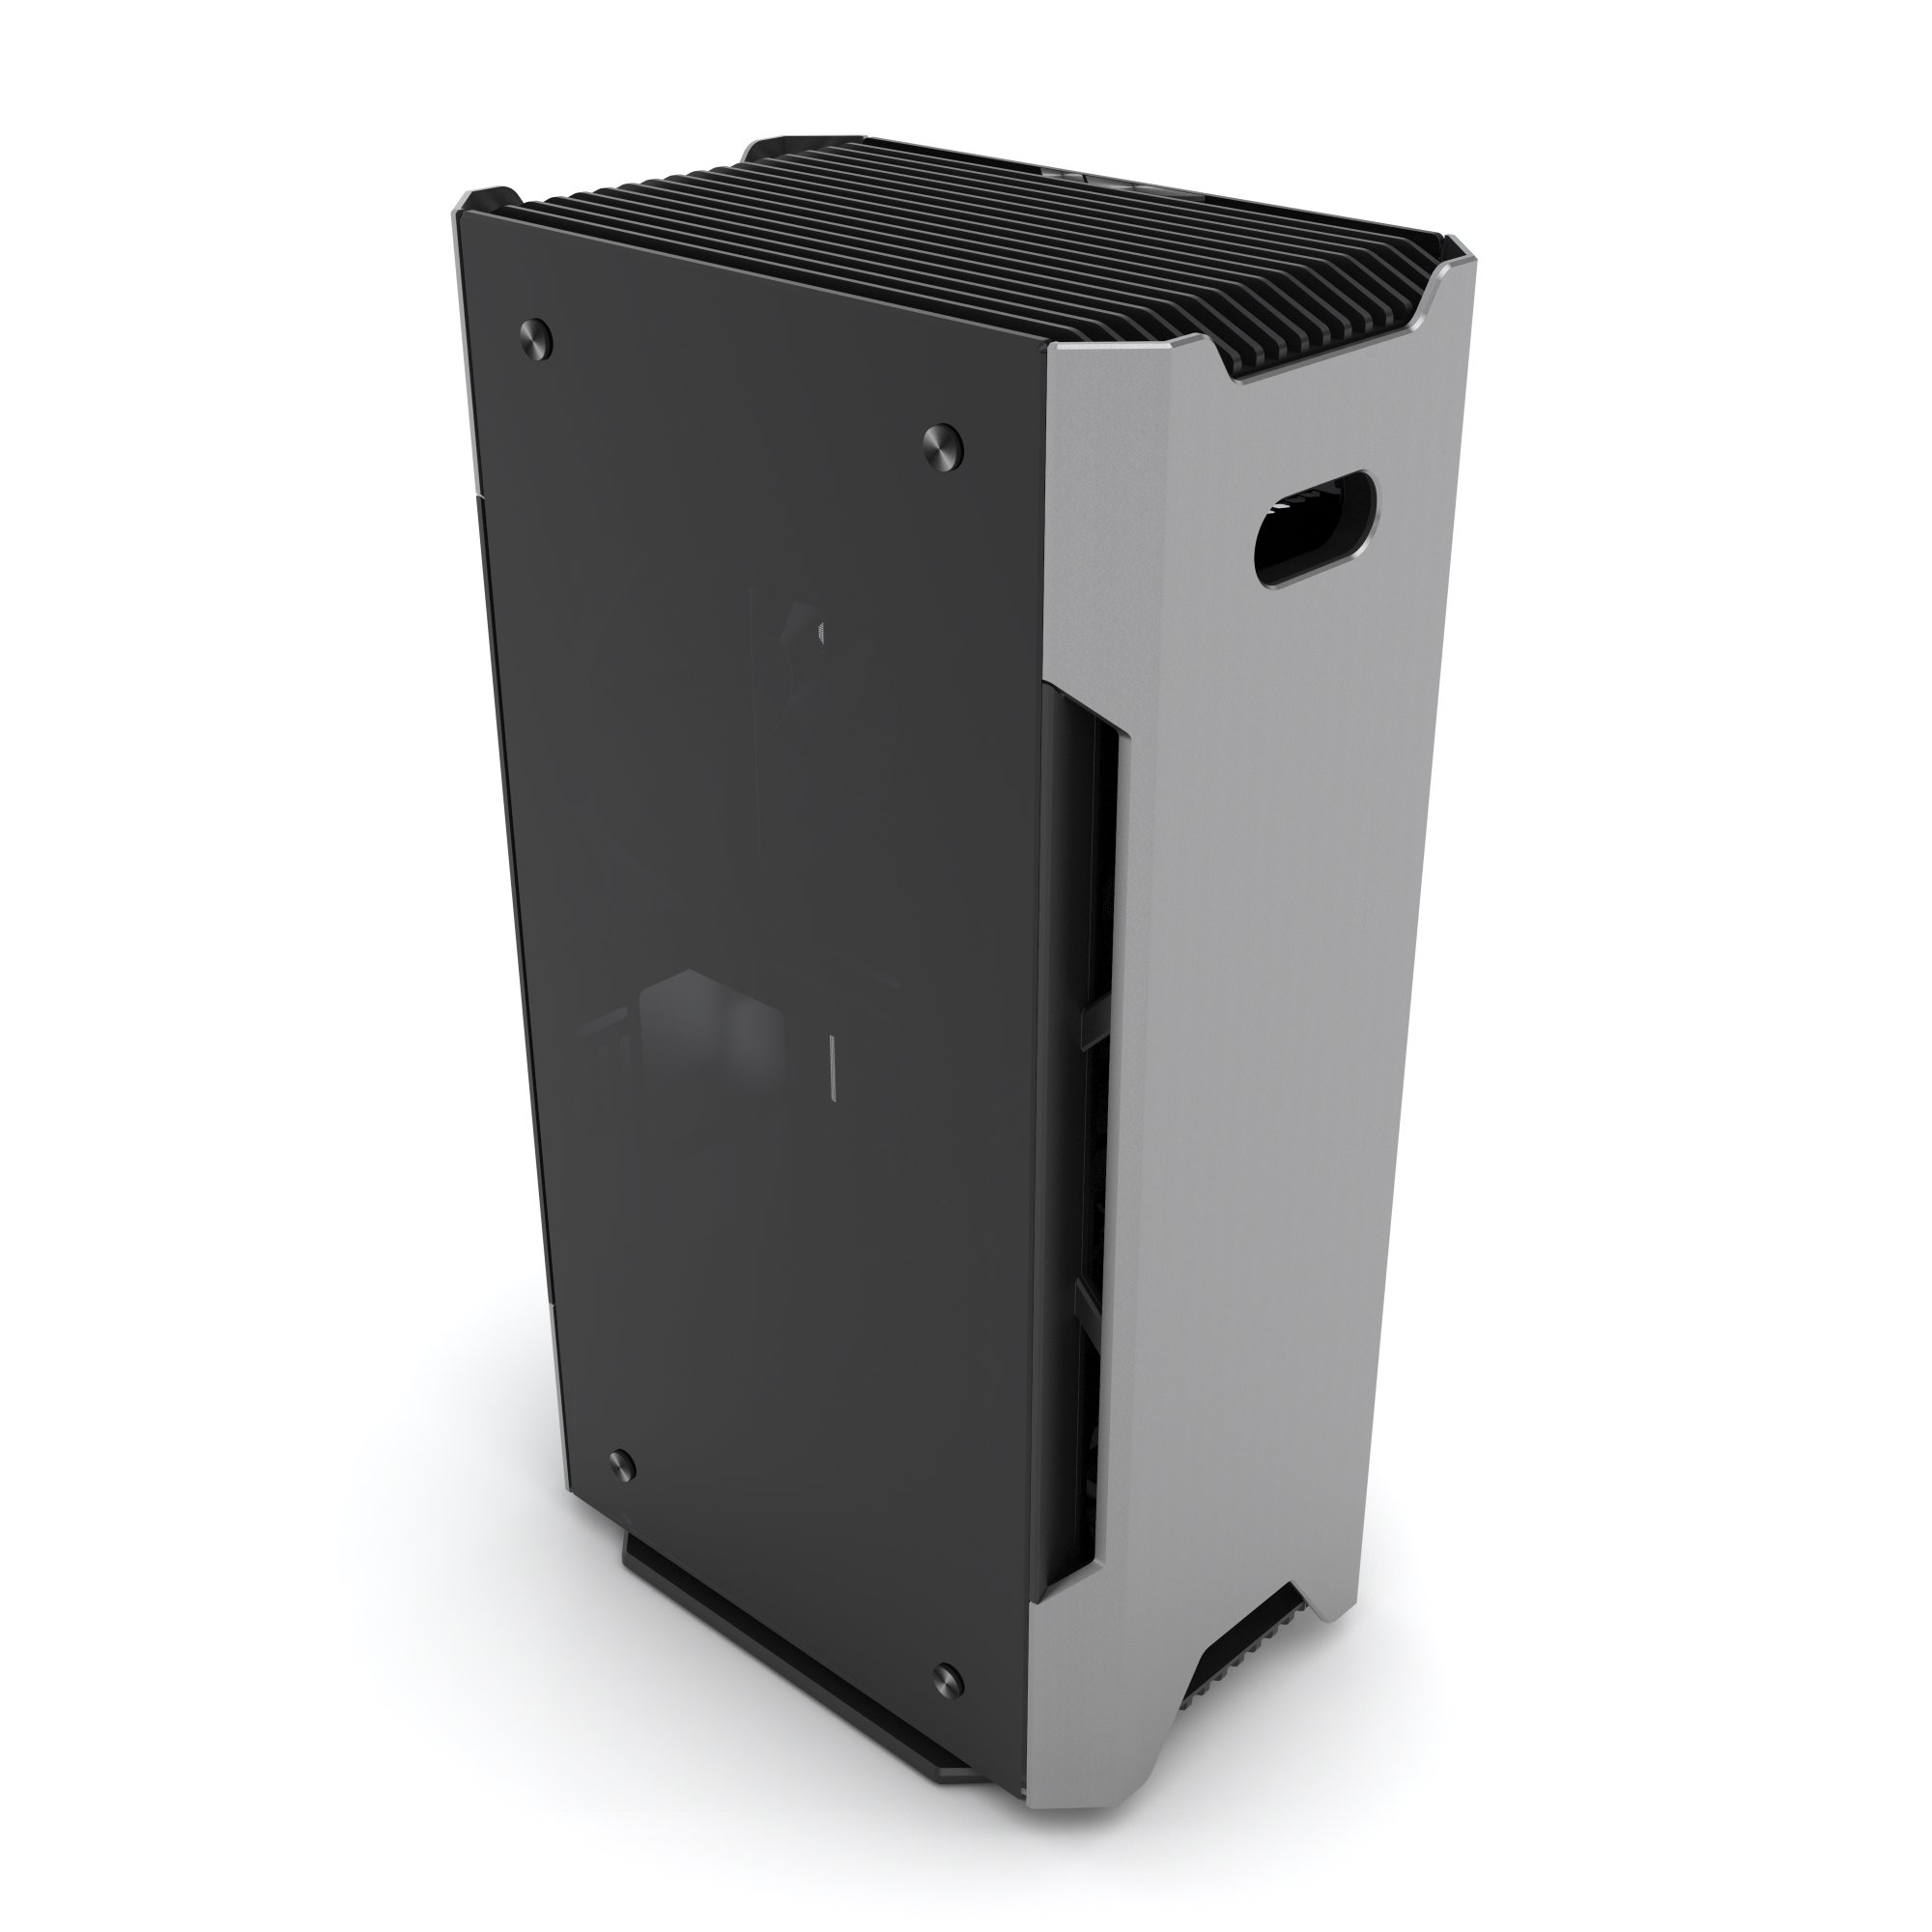 Phanteks PH-ES217E_AG EVOLV SHIFT Mini ITX Dual Tempered Glass for AIO water cooling Anthracite Gray Cases by Phanteks (Image #4)